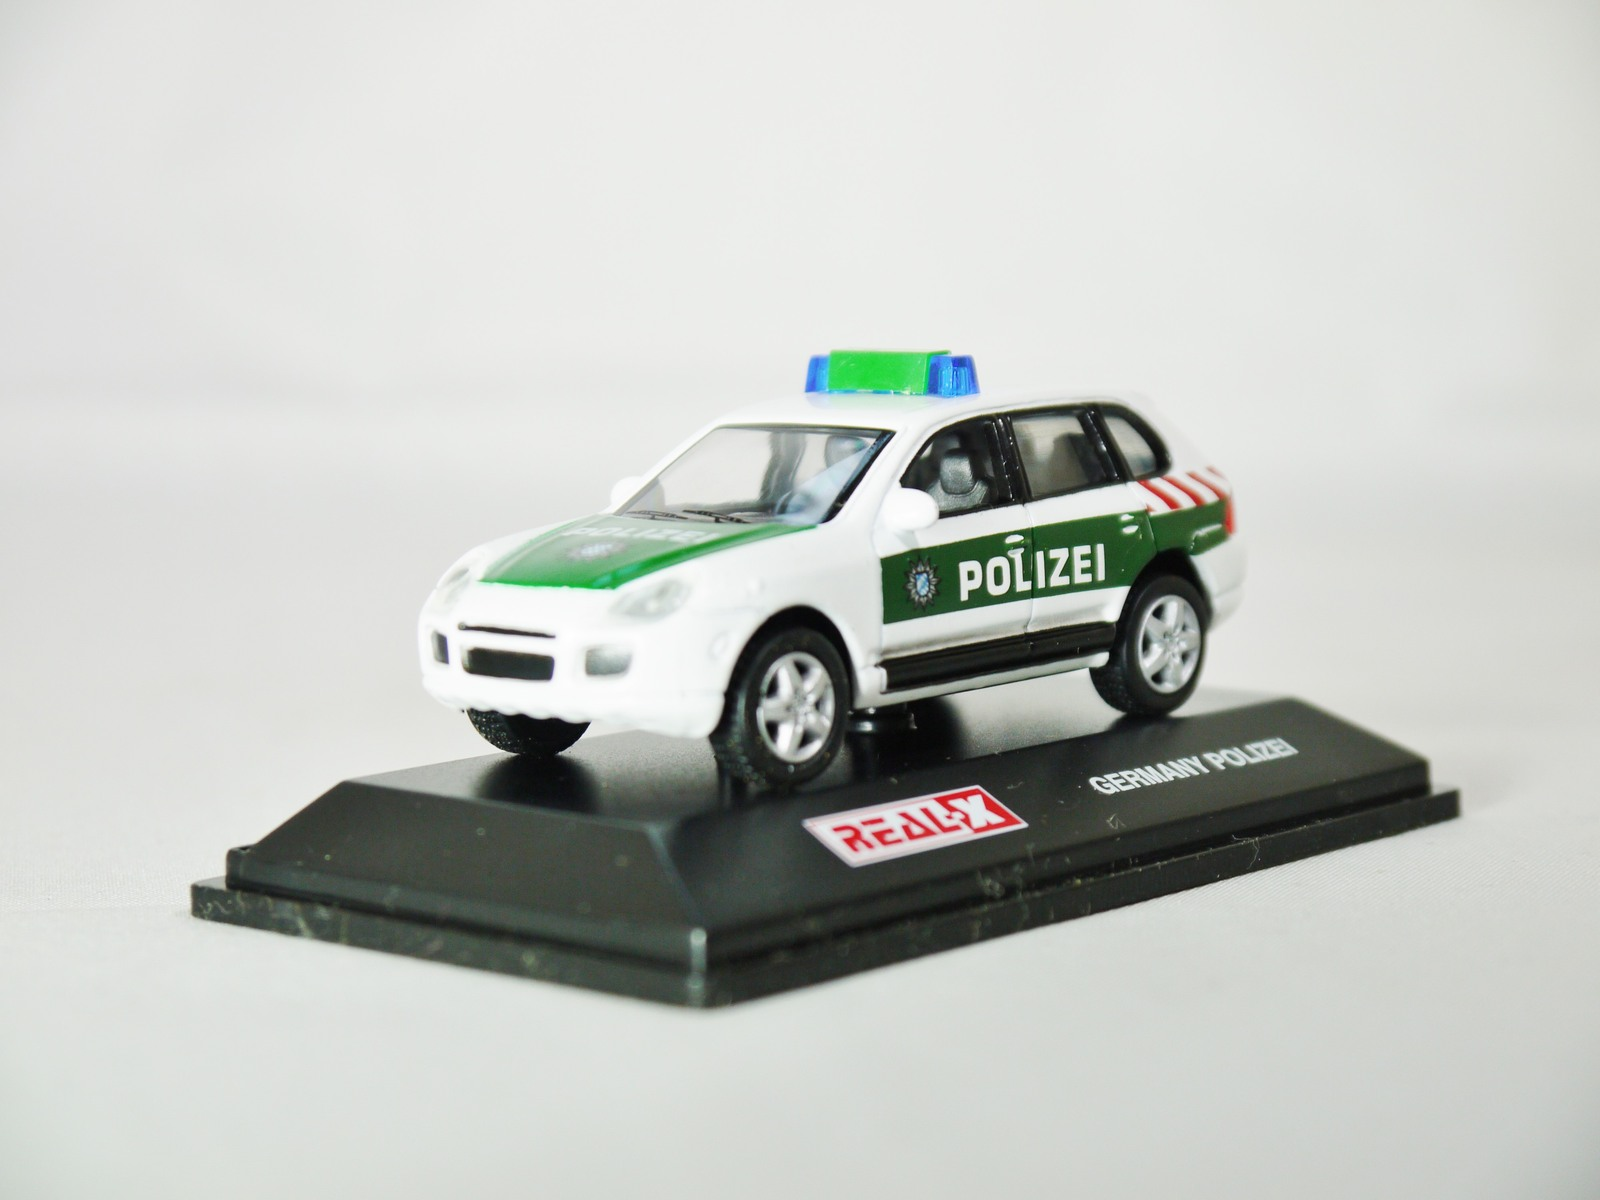 Real-x_collection_1-72_germany_polizei_car_512_-_porsche_cayenne_patrol_car_-_02